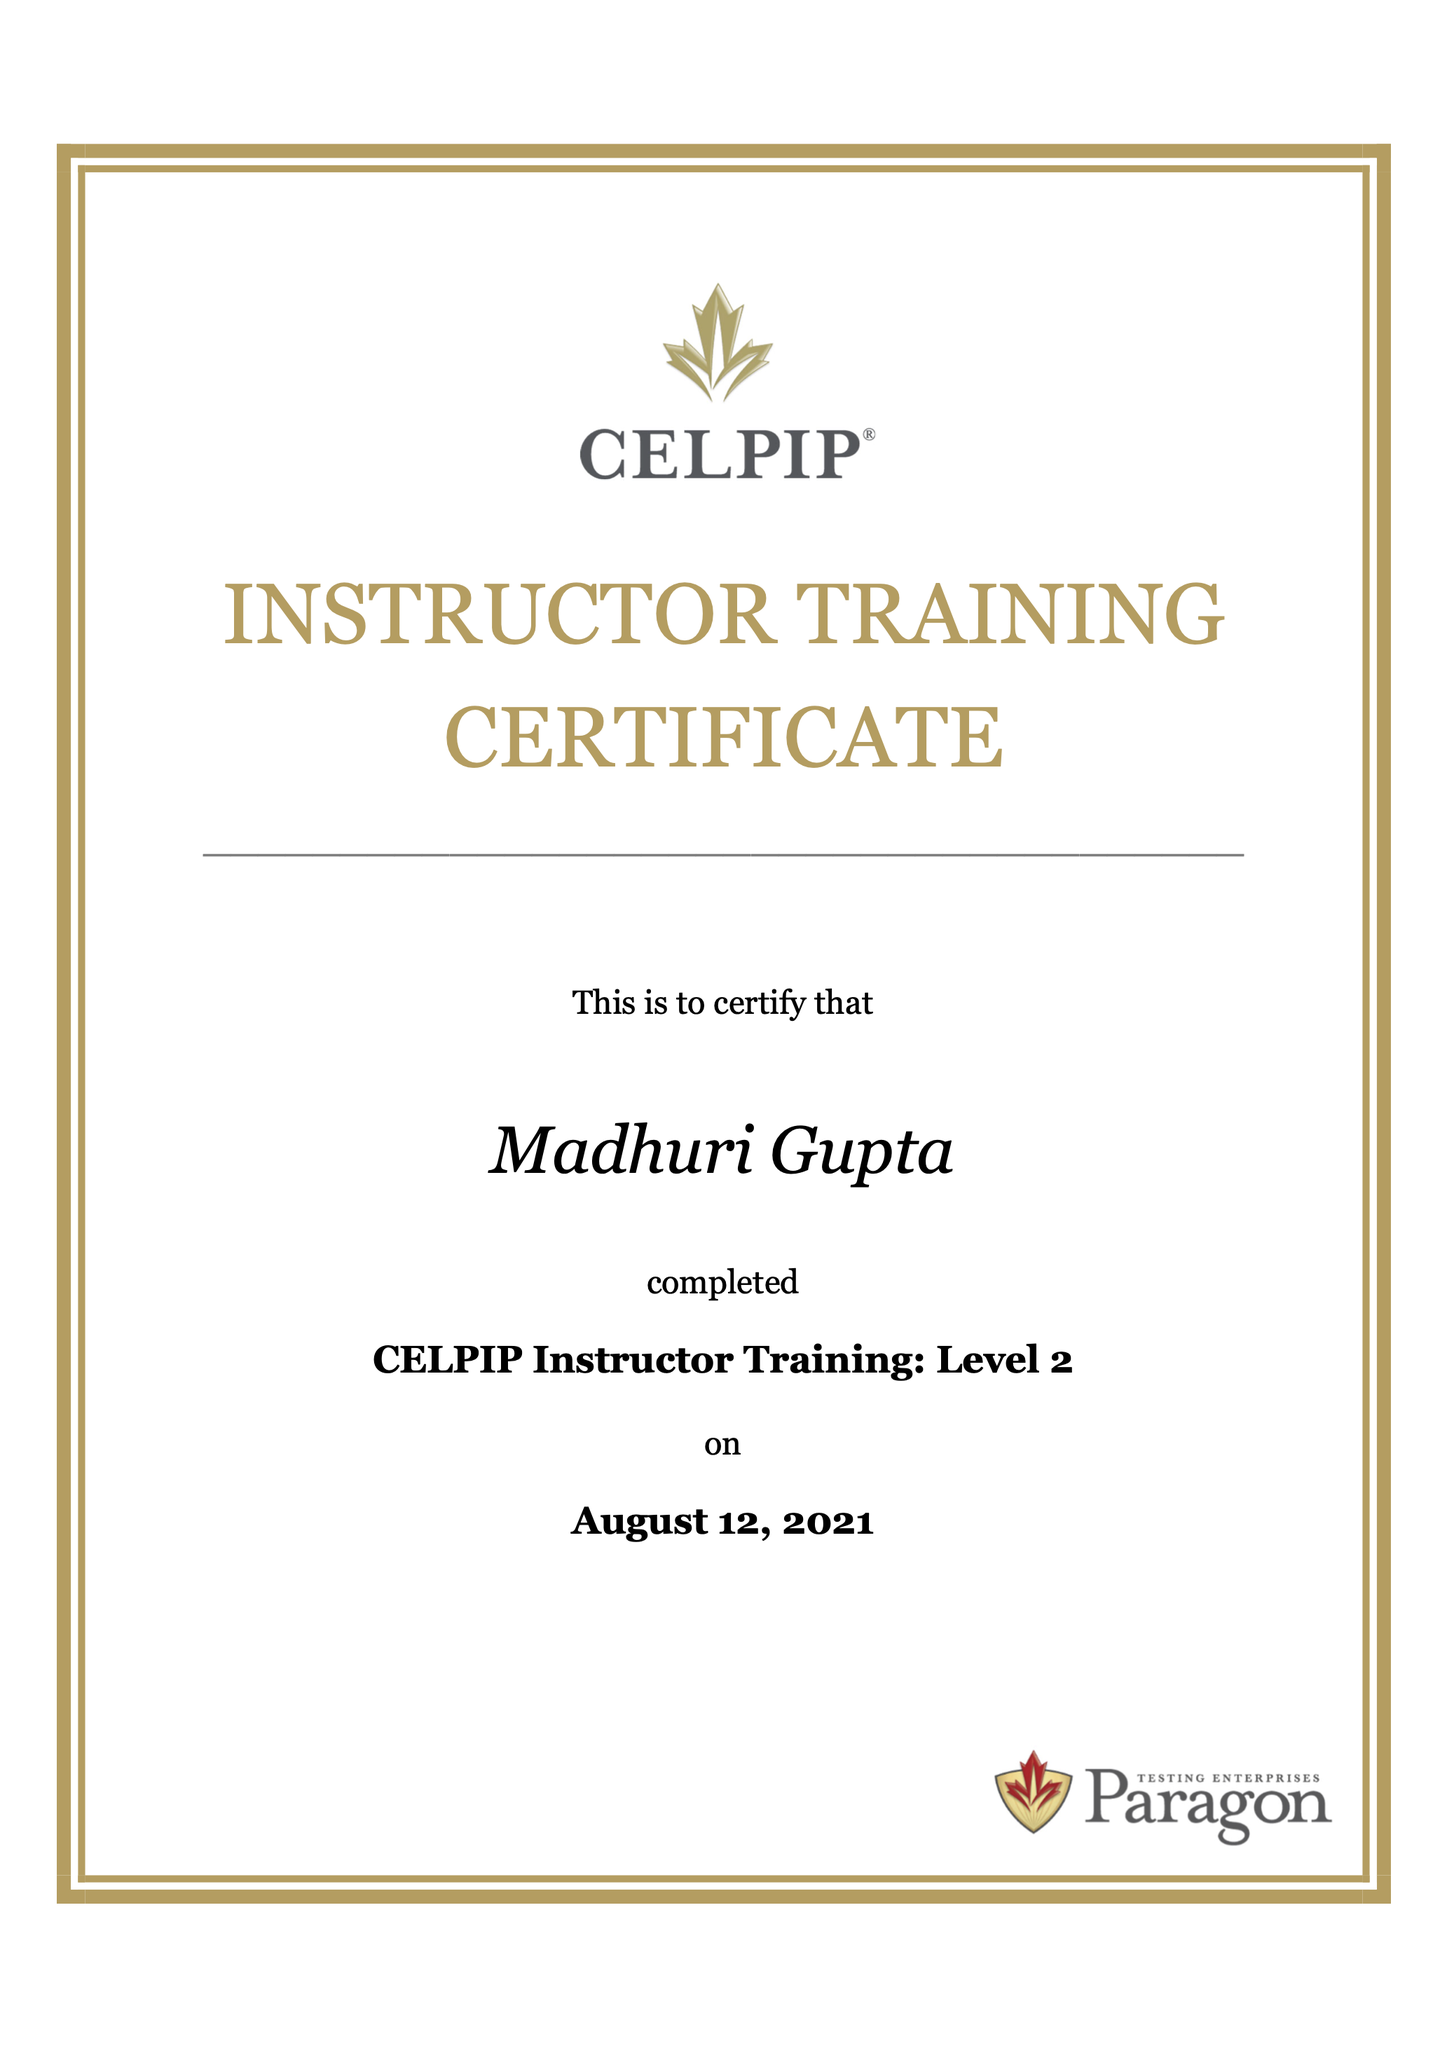 IELTS/PTE/ CELPIP CLASSES WITH IDP AND TESOL CERTI